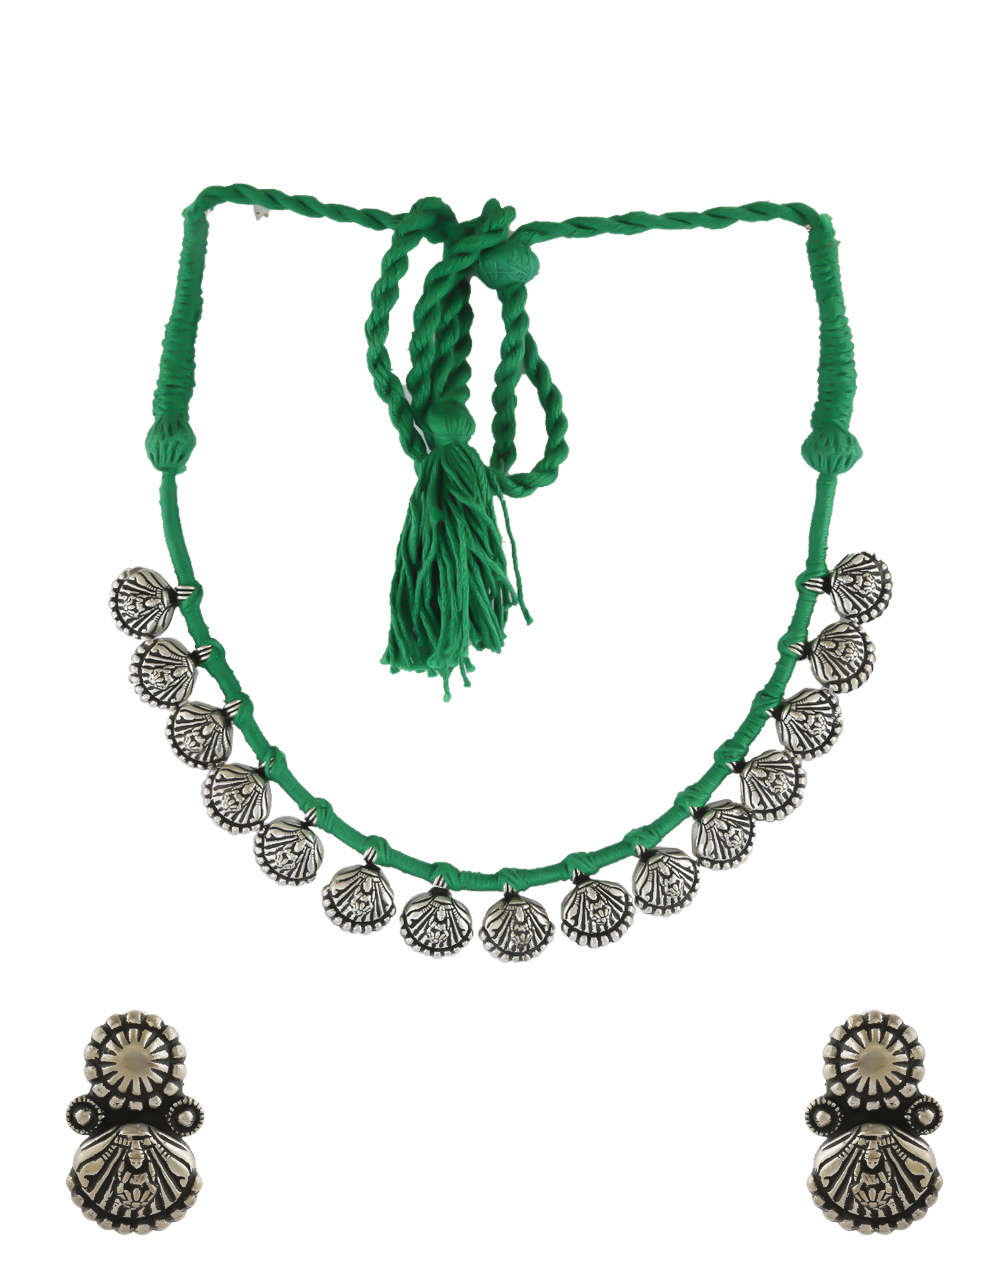 Green Colour Silver Oxidised Finish Necklace For Women